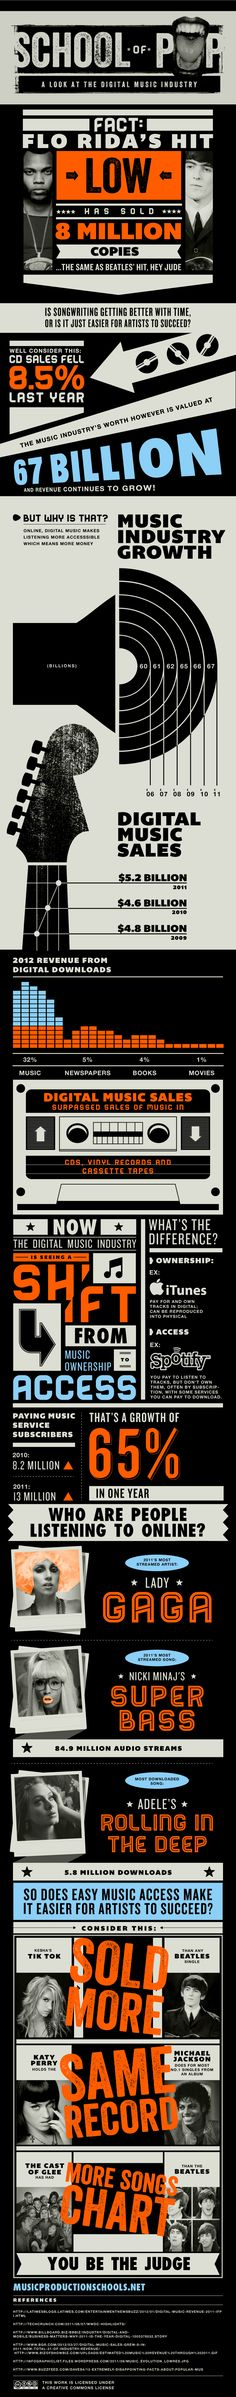 Pop: A Look at the Digital Music Industry